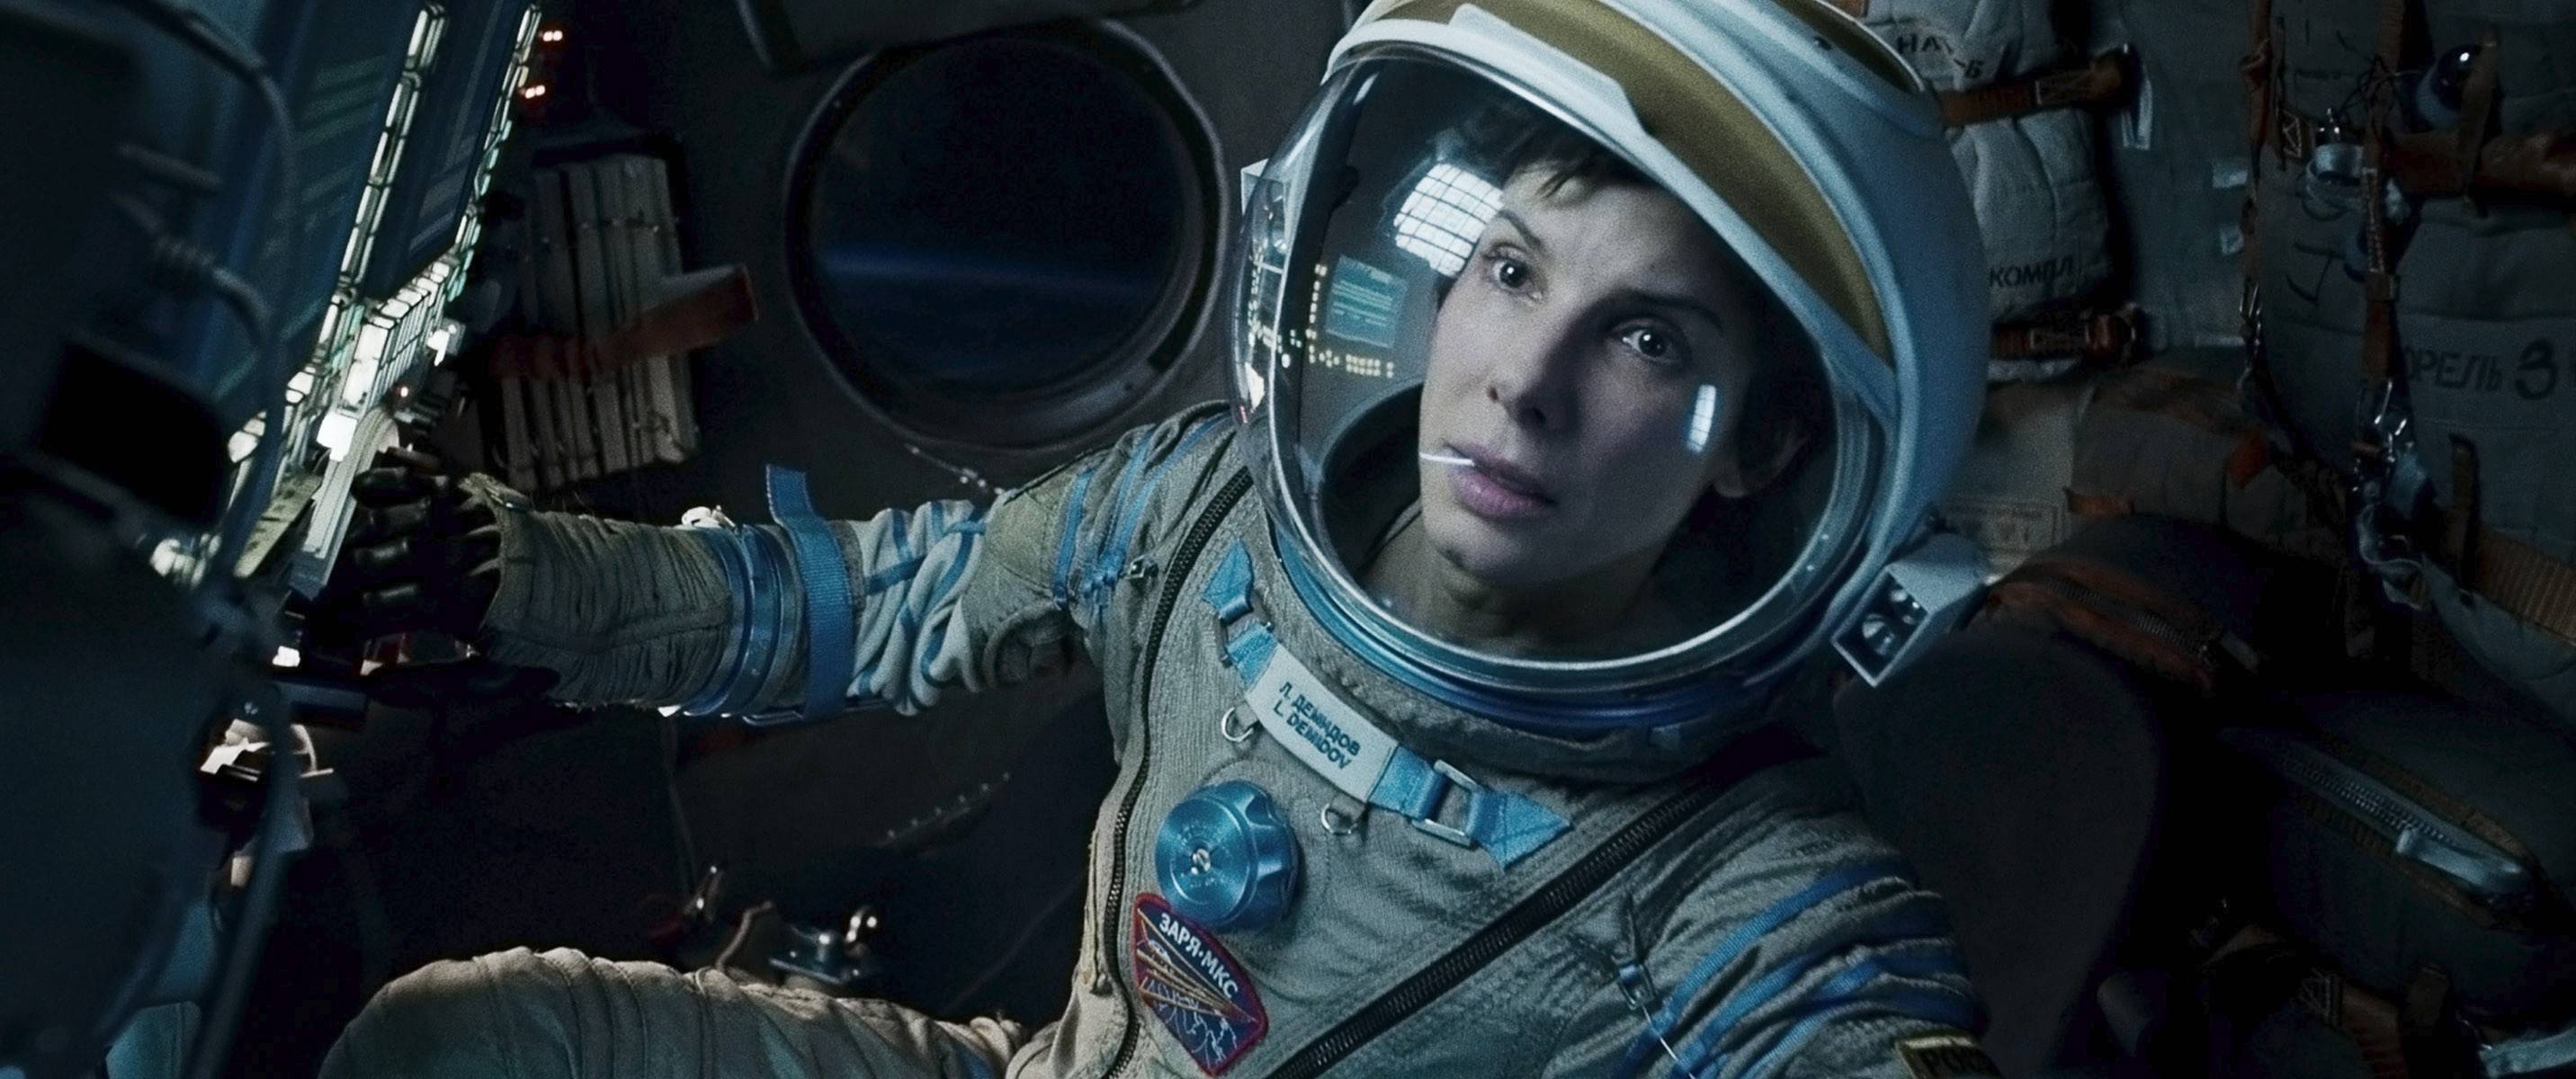 "Sandra Bullock plays a Lake Zurich astronaut in Alfonso Cuaron's ""Gravity,"" which will win the bulk of its Academy Award nominations."